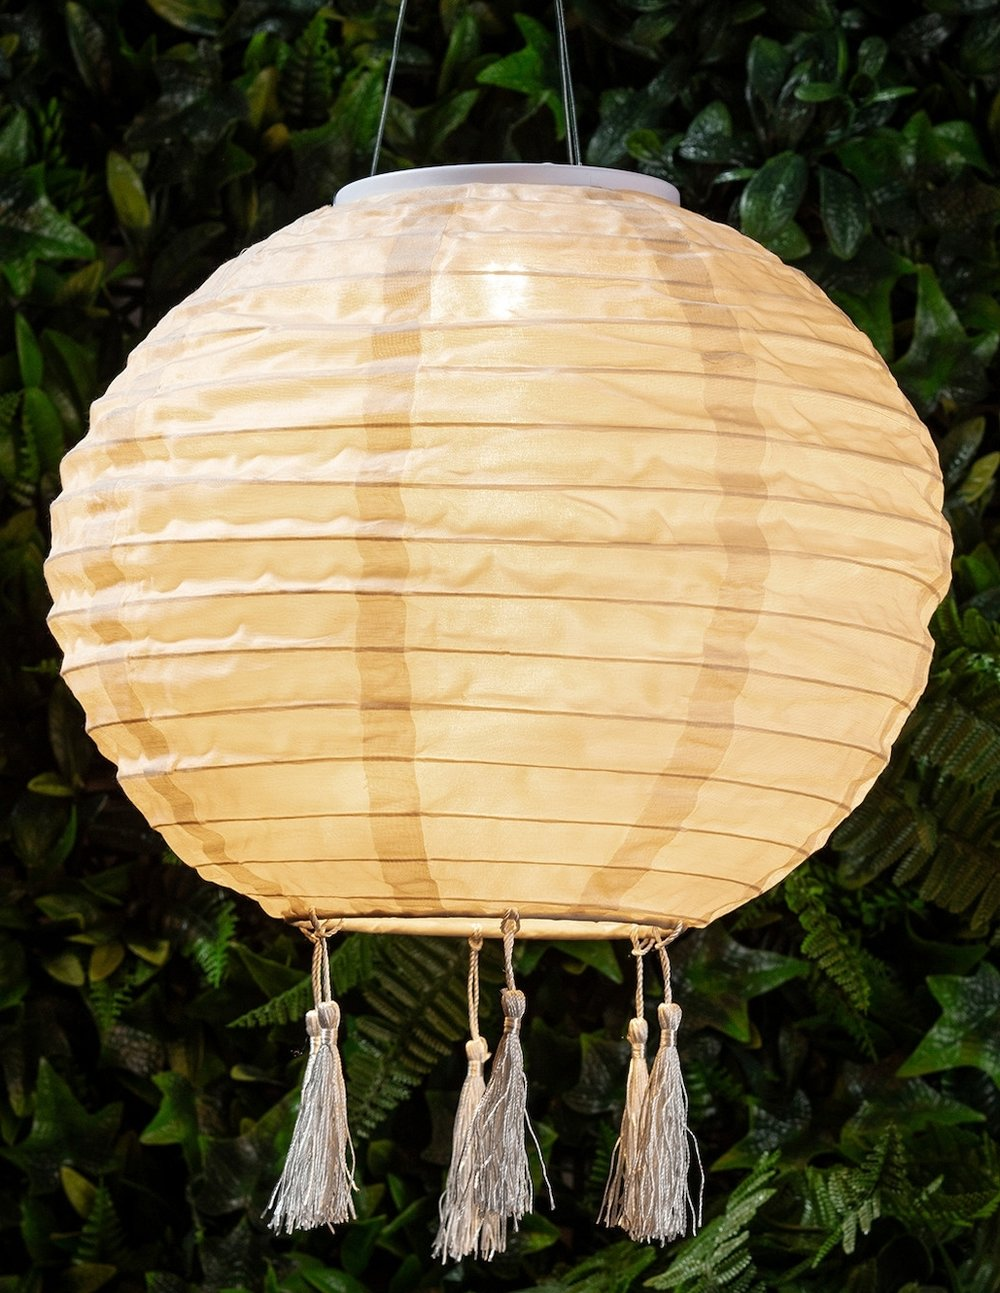 Lucena Cream Tassel Solar Lantern , Lights 4 Fun £9.99